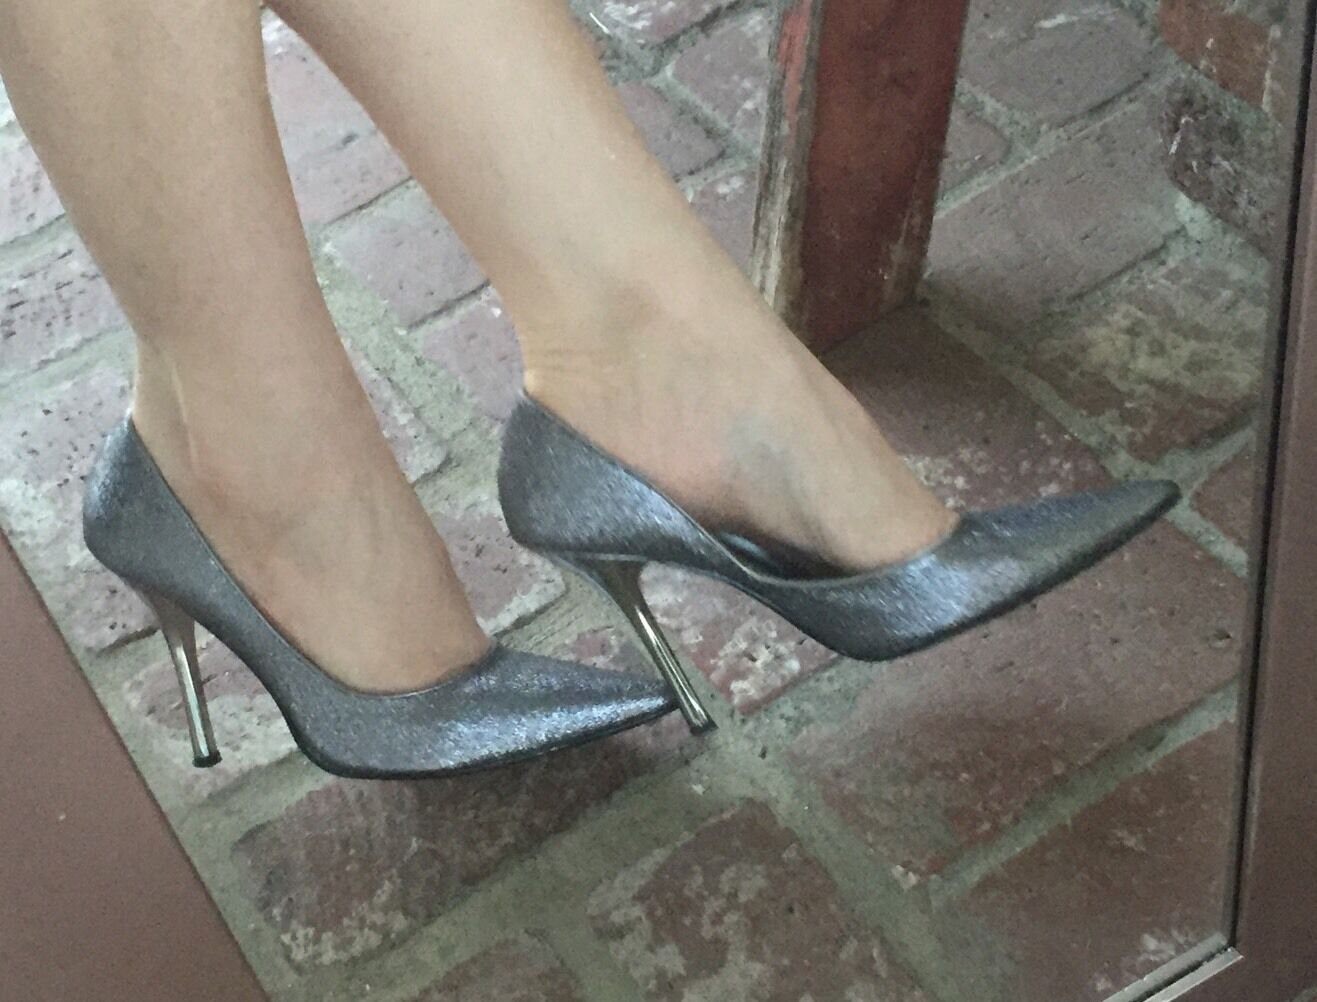 SiLvER SPaRkLe Sz 6 Pointy HolidaY Toe CARRIE Stiletto Heel PUMP GuESS HolidaY Pointy Party af2ad0